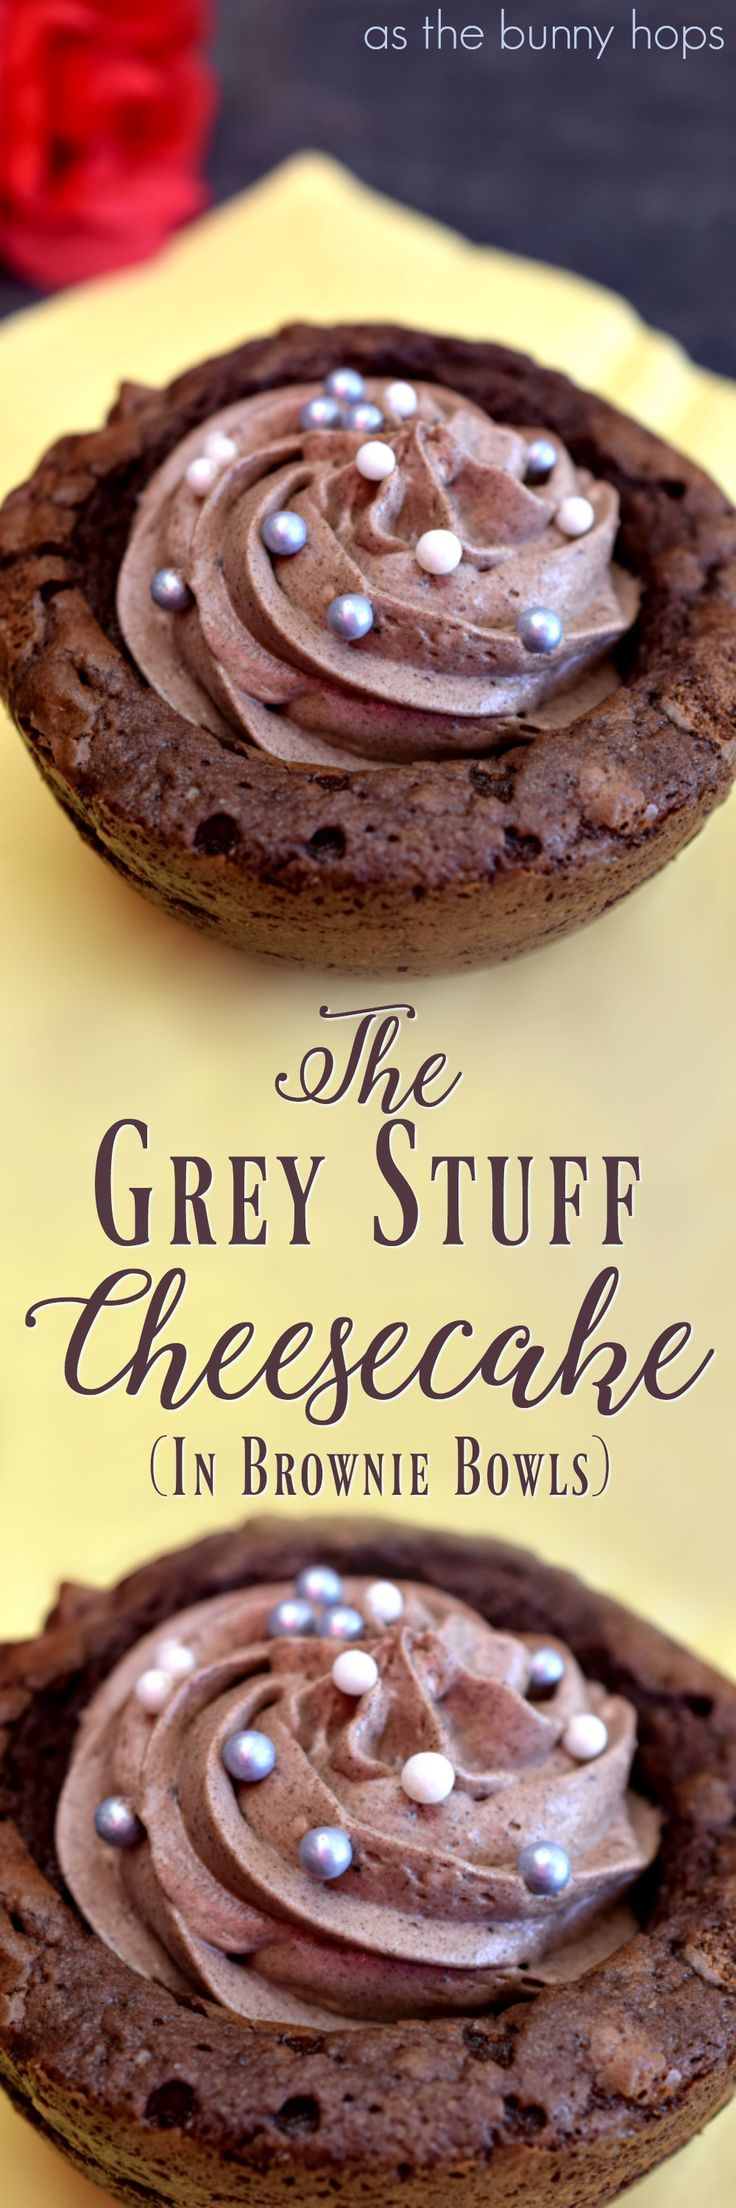 """We're making """"The Grey Stuff"""" cheesecake in brownie bowls, inspired by the famous dessert at Be Our Guest restaurant!"""